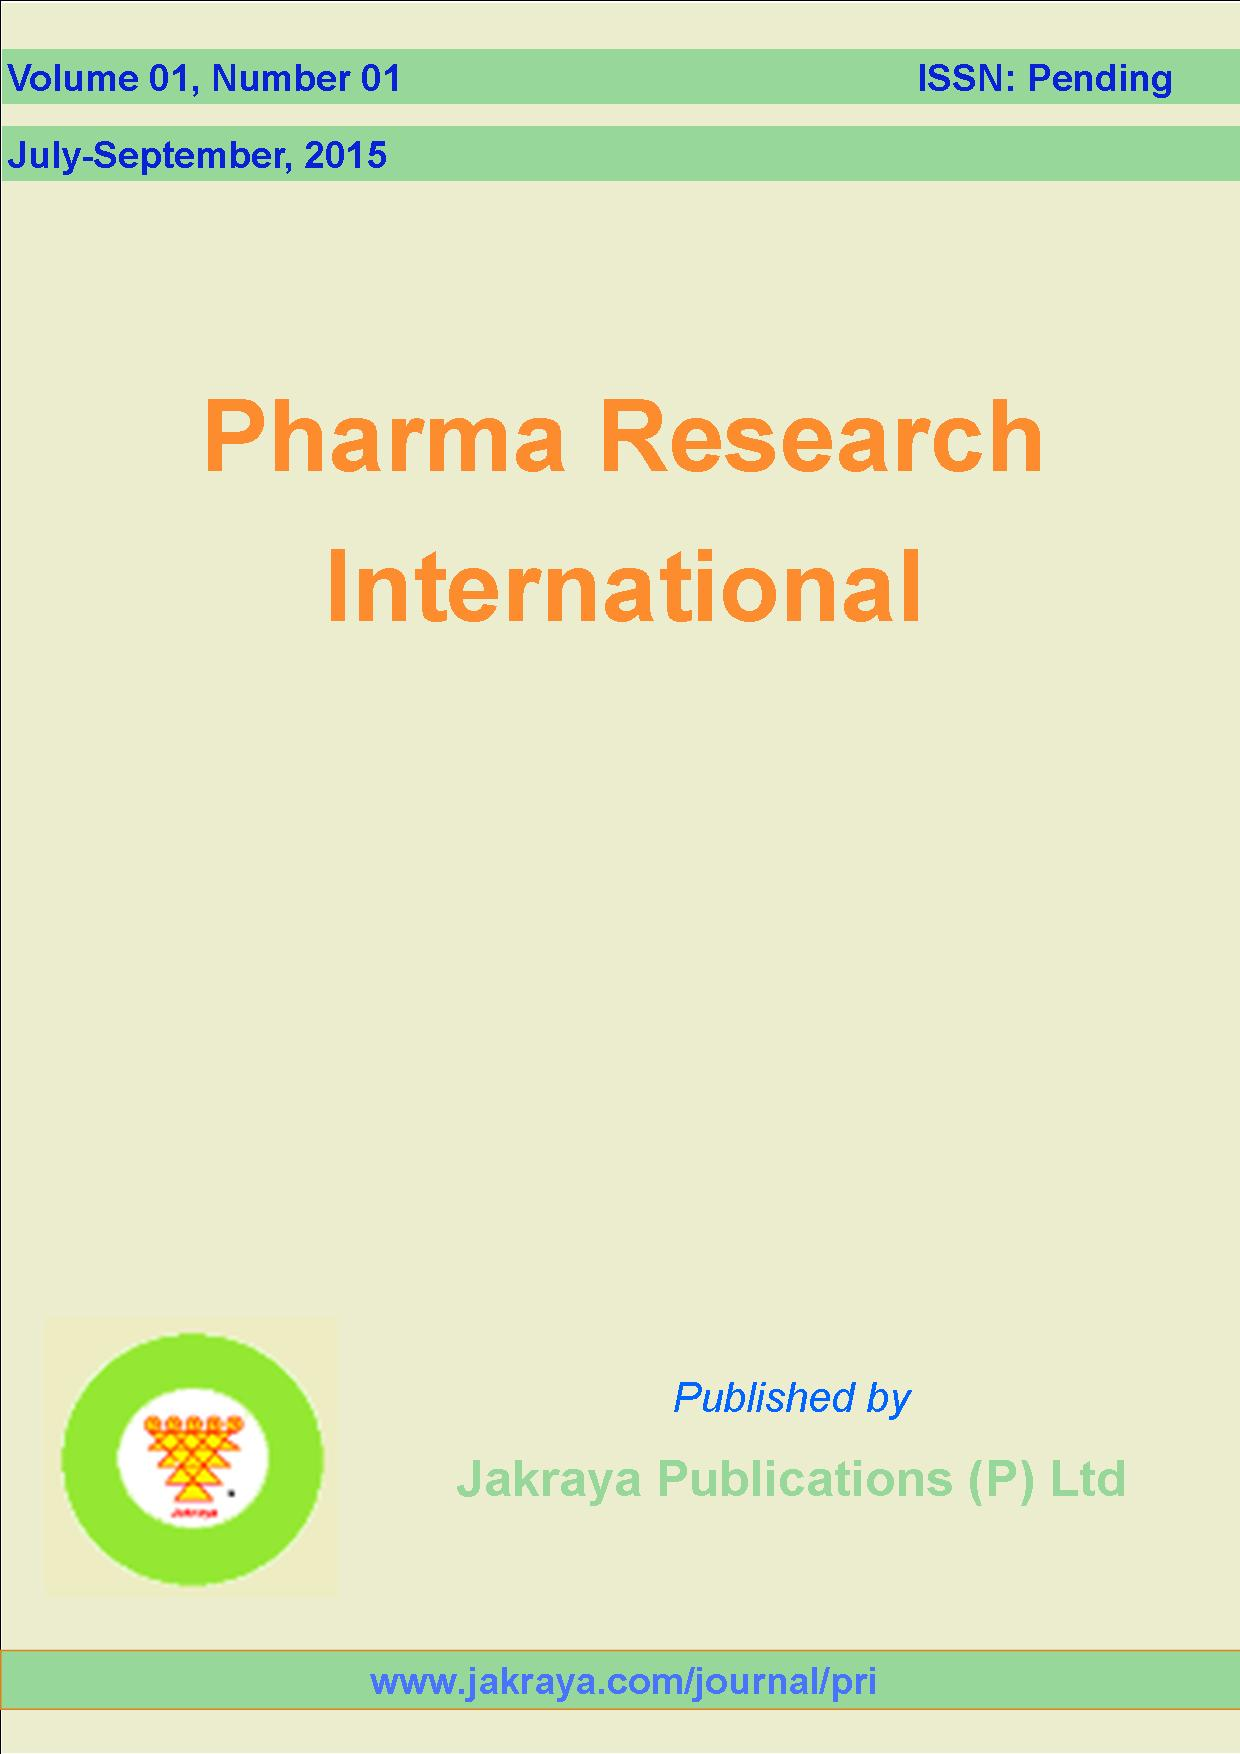 Pharma Research International